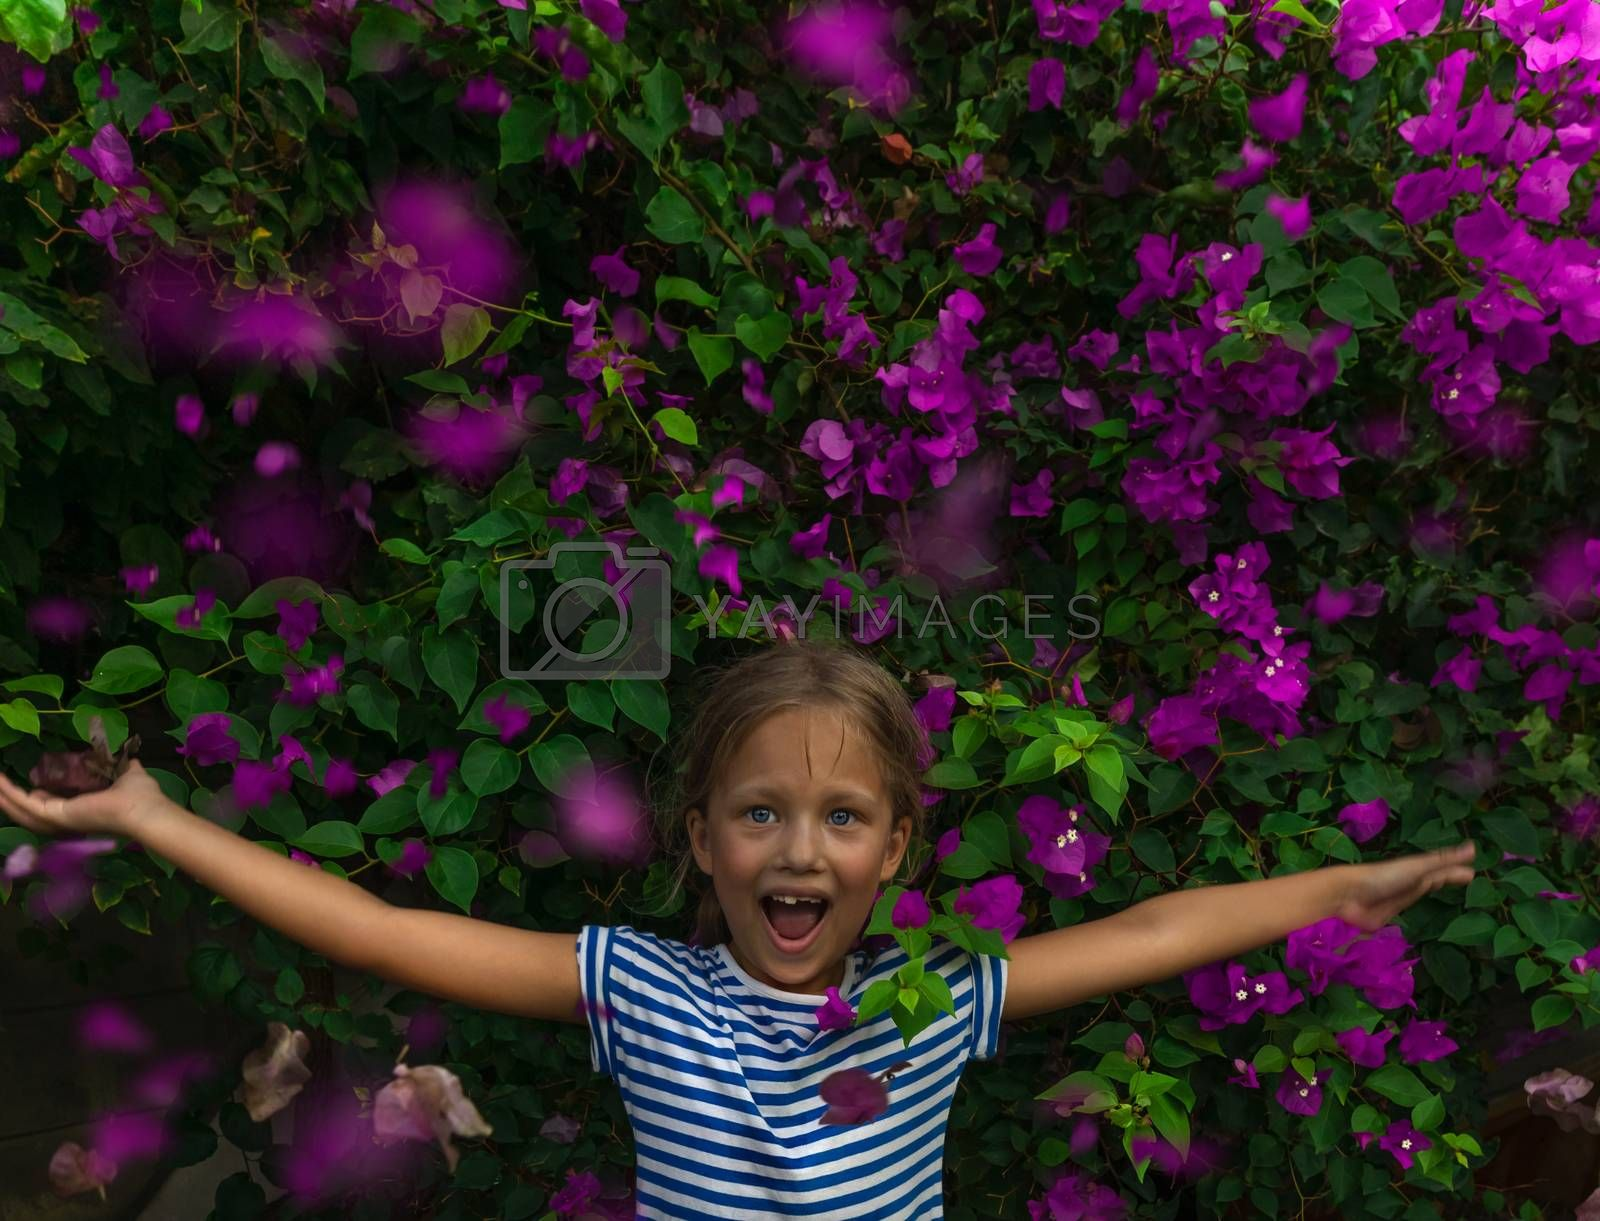 Royalty free image of Little Girl in the Garden by Anna_Omelchenko